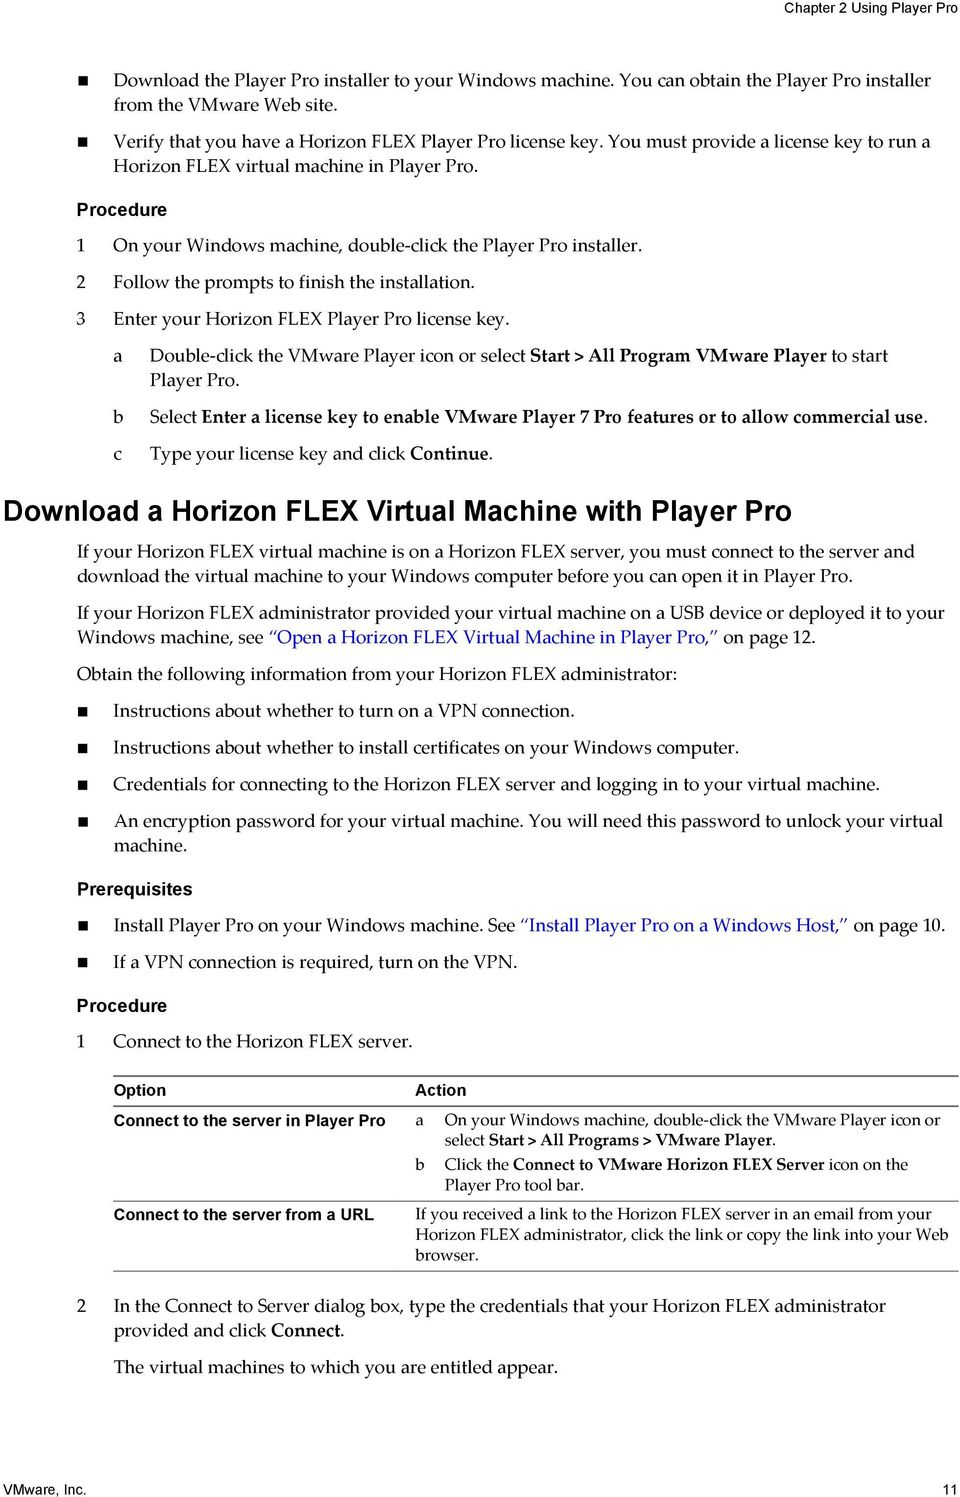 Procedure 1 On your Windows machine, double-click the Player Pro installer. 2 Follow the prompts to finish the installation. 3 Enter your Horizon FLEX Player Pro license key.